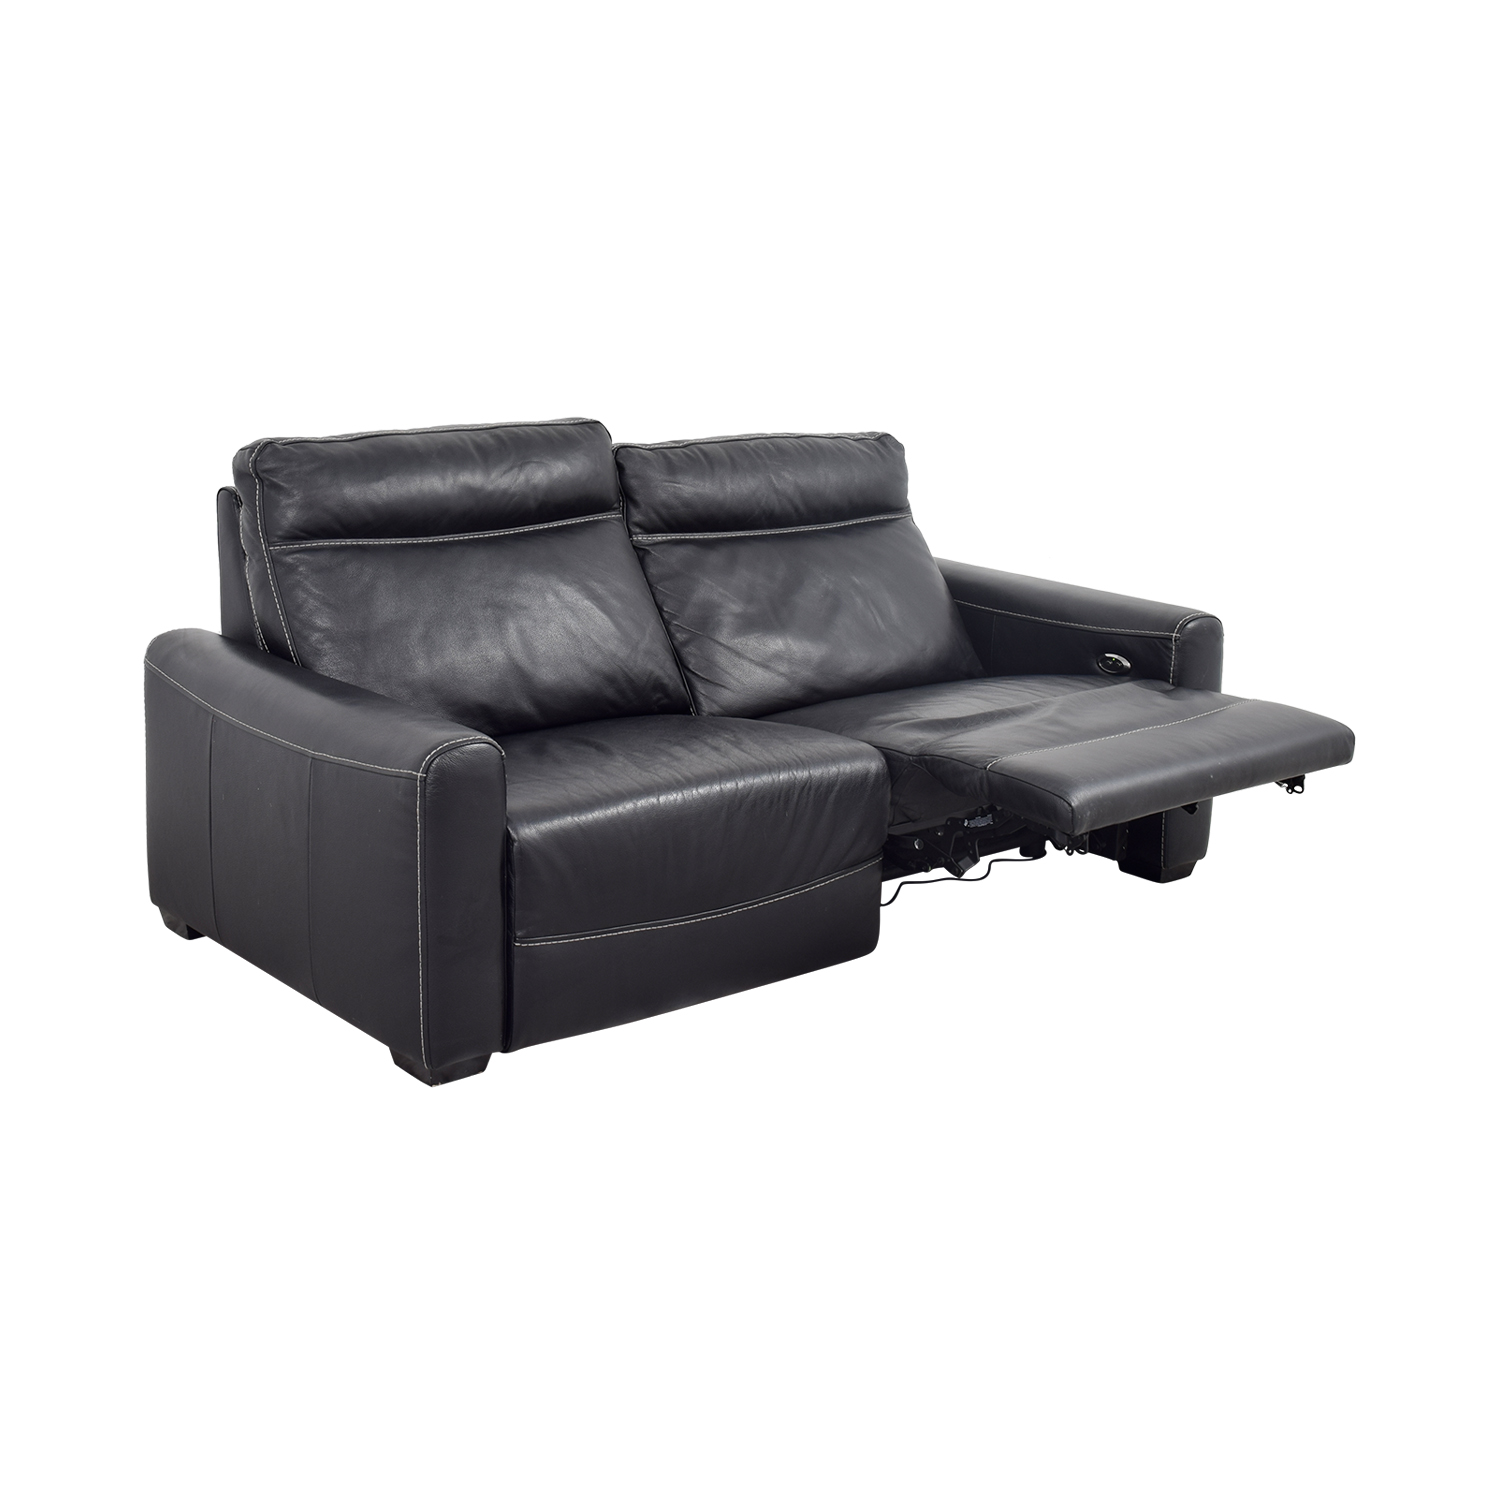 80 Off Macy S Macy S Black Leather Reclining Sofa Sofas